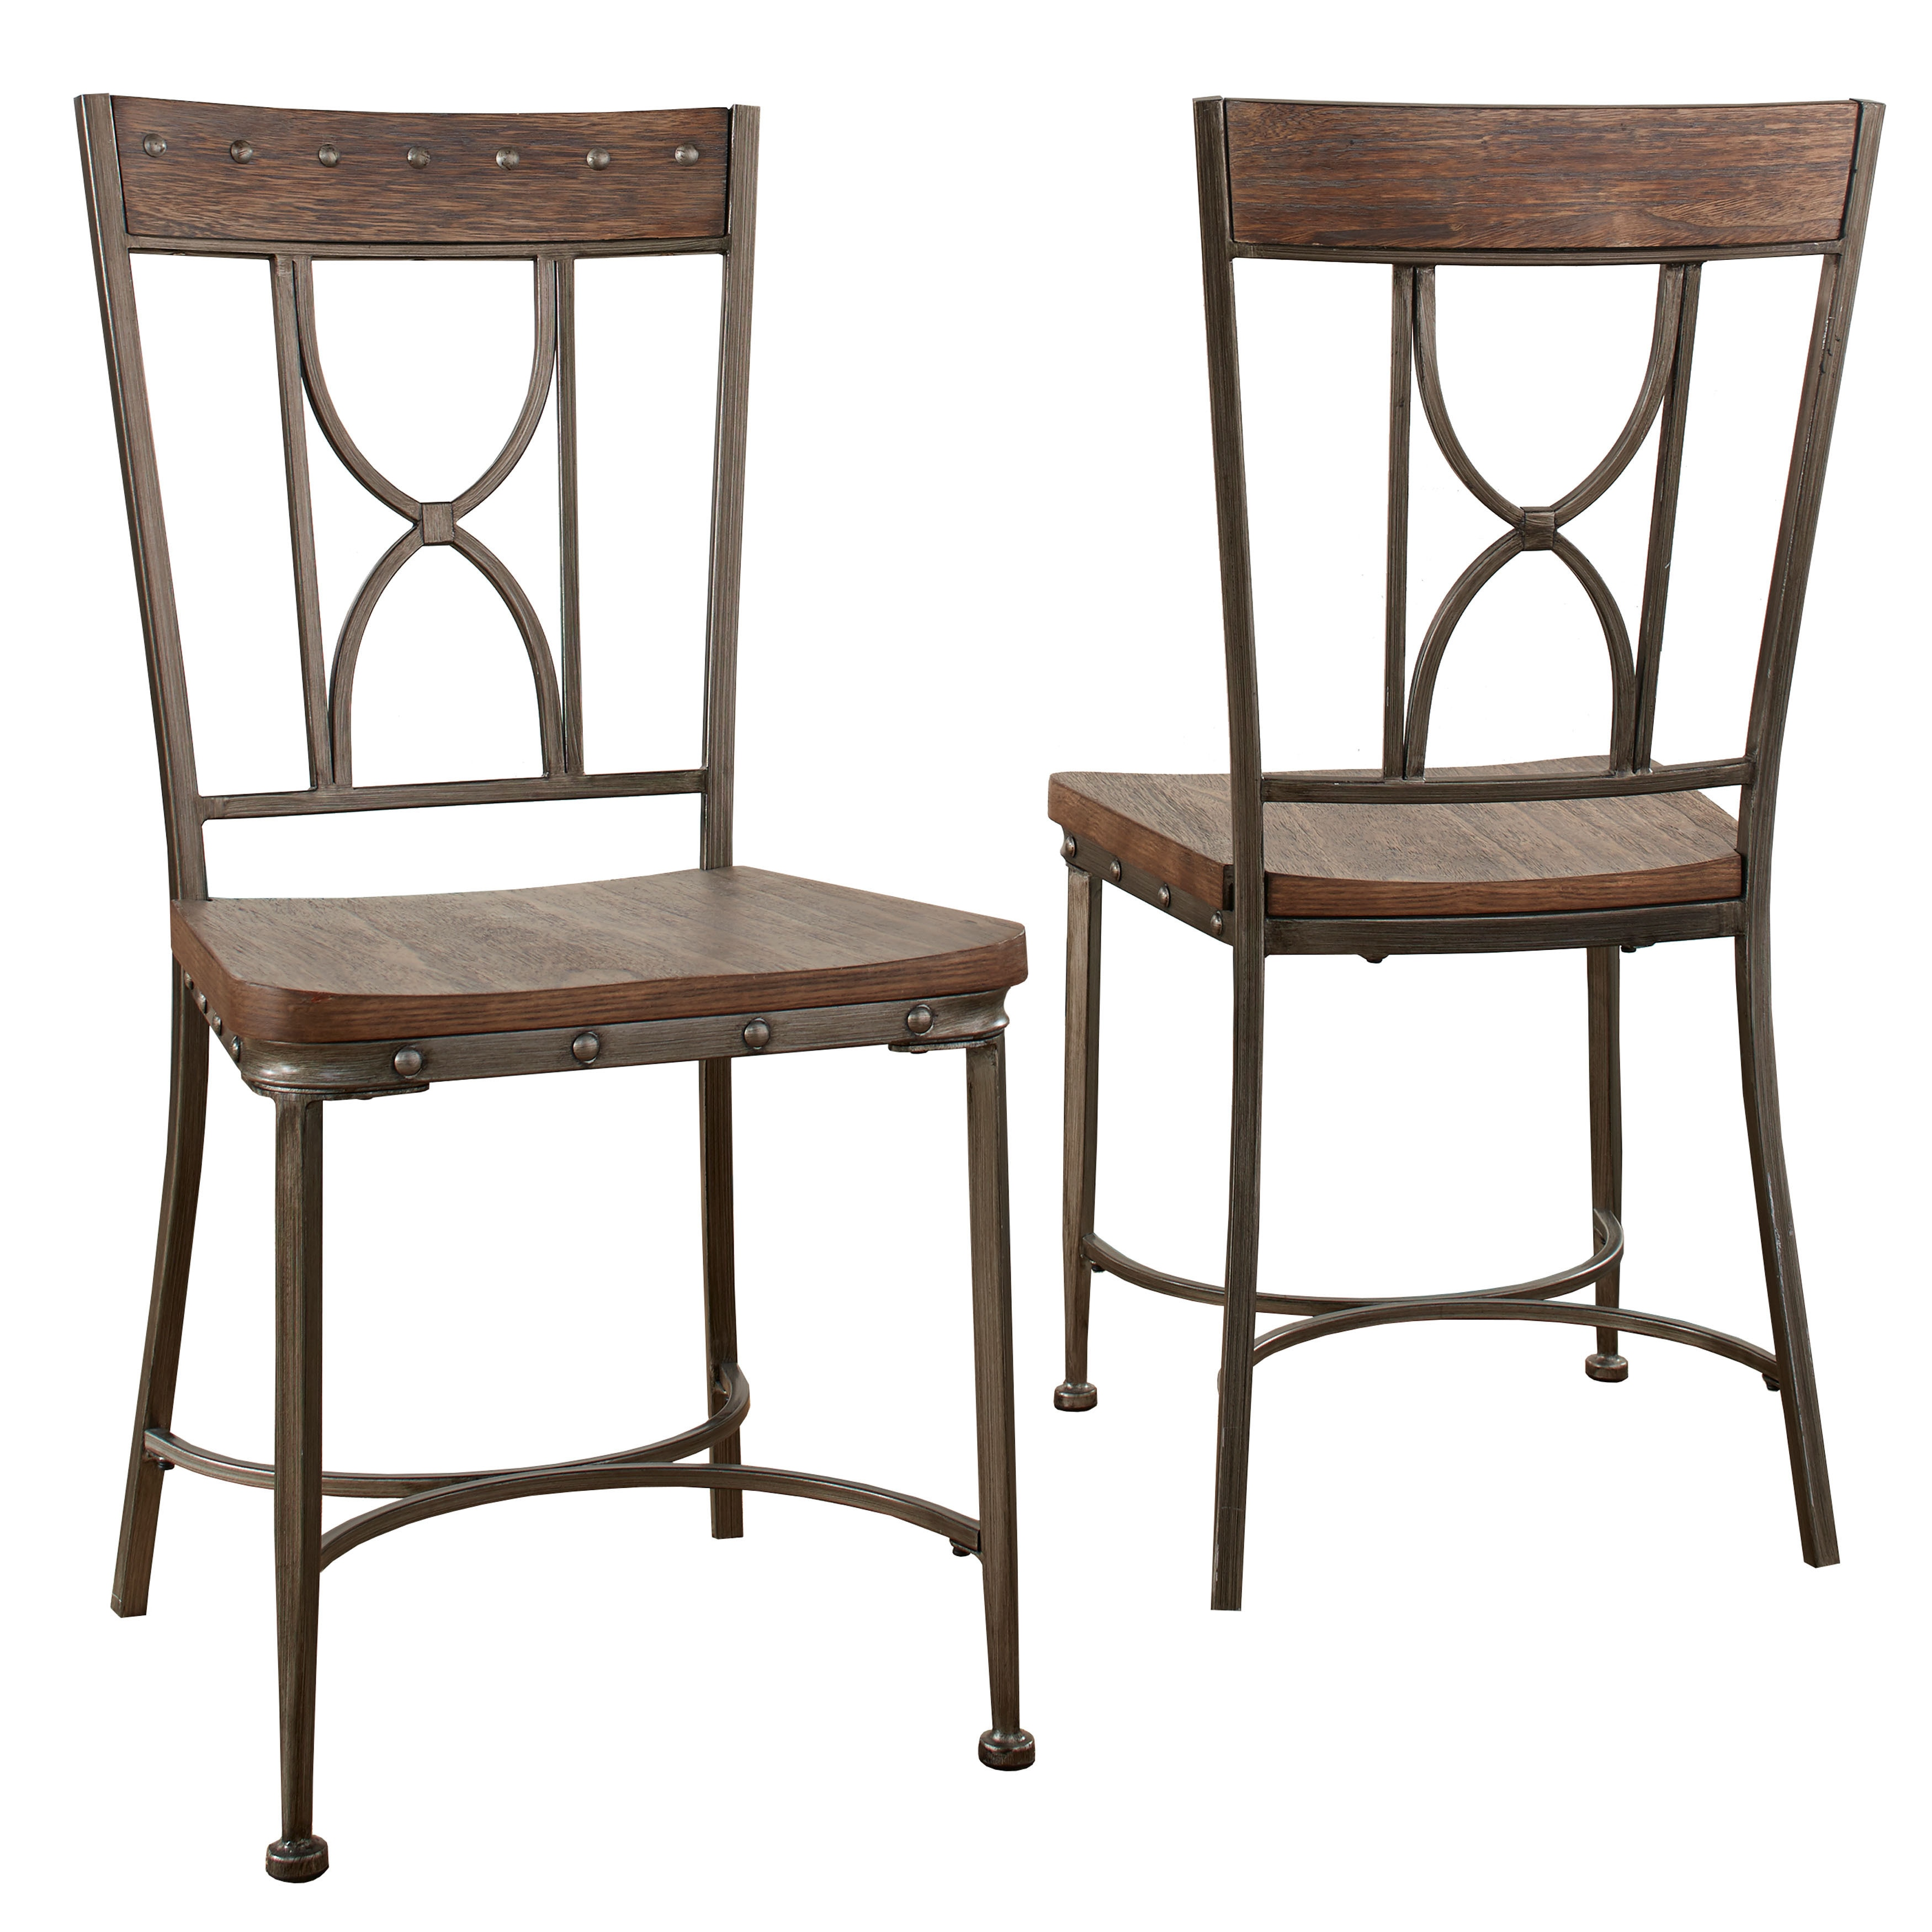 Hilale Furniture Paddock Grey Metal And Wood Dining Chair Set Of 2 On Free Shipping Today 15437586